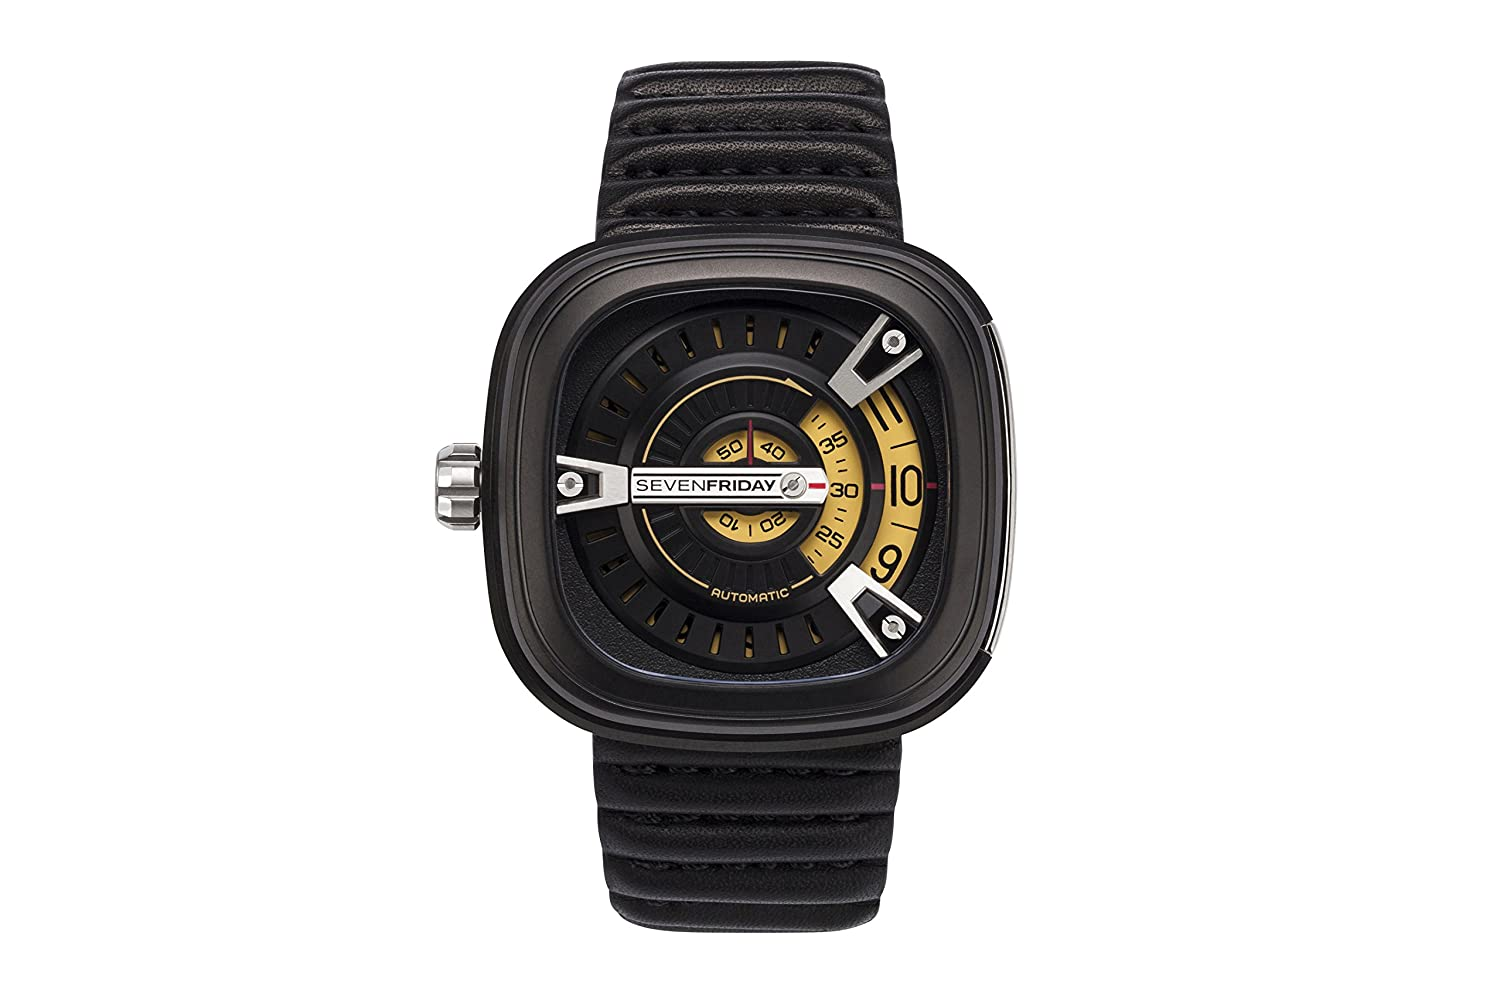 SEVENFRIDAY (Seven Friday) (H6 DLT) Mens Watch MSeries tonoface Watch 4562320464062, gold Black, Adjustable